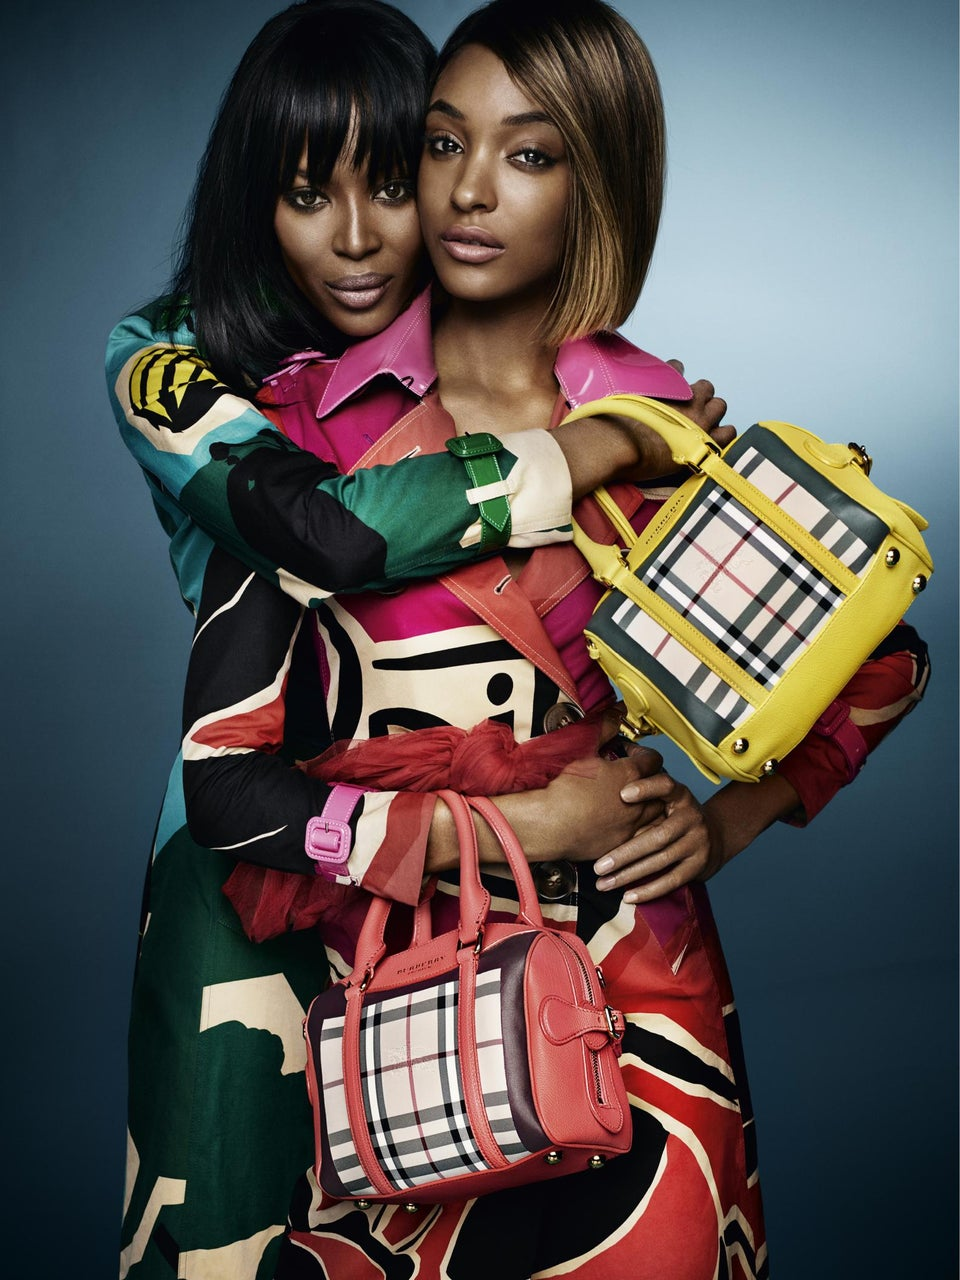 Get The Look: Naomi Campbell and Jourdan Dunn in The Burberry Spring '15 Campaign